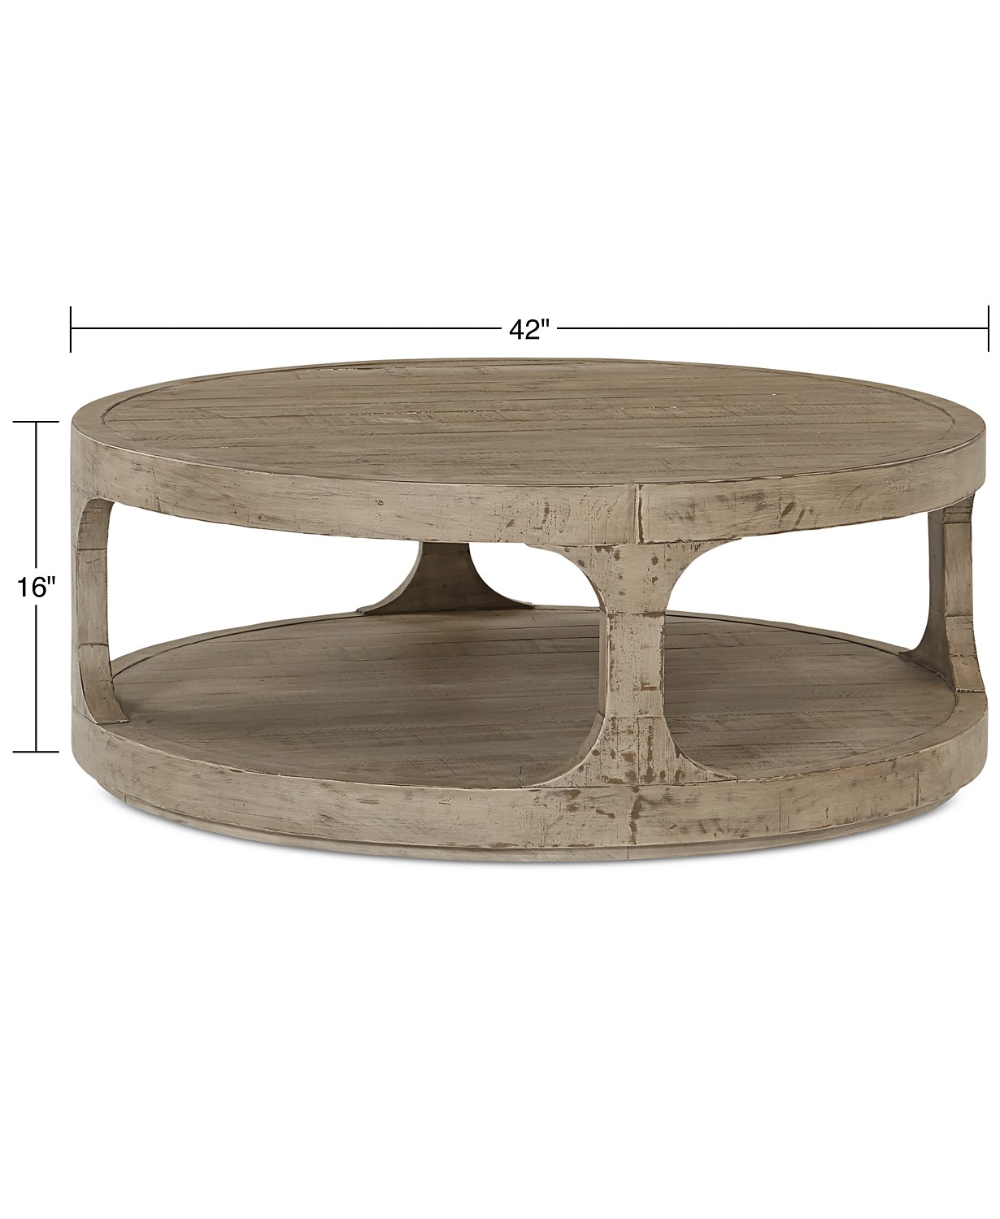 Furniture Derevo Coffee Table Reviews Furniture Macy S In 2021 Coffee Table Round Wood Coffee Table Wood Coffee Table Living Room [ 1219 x 1000 Pixel ]